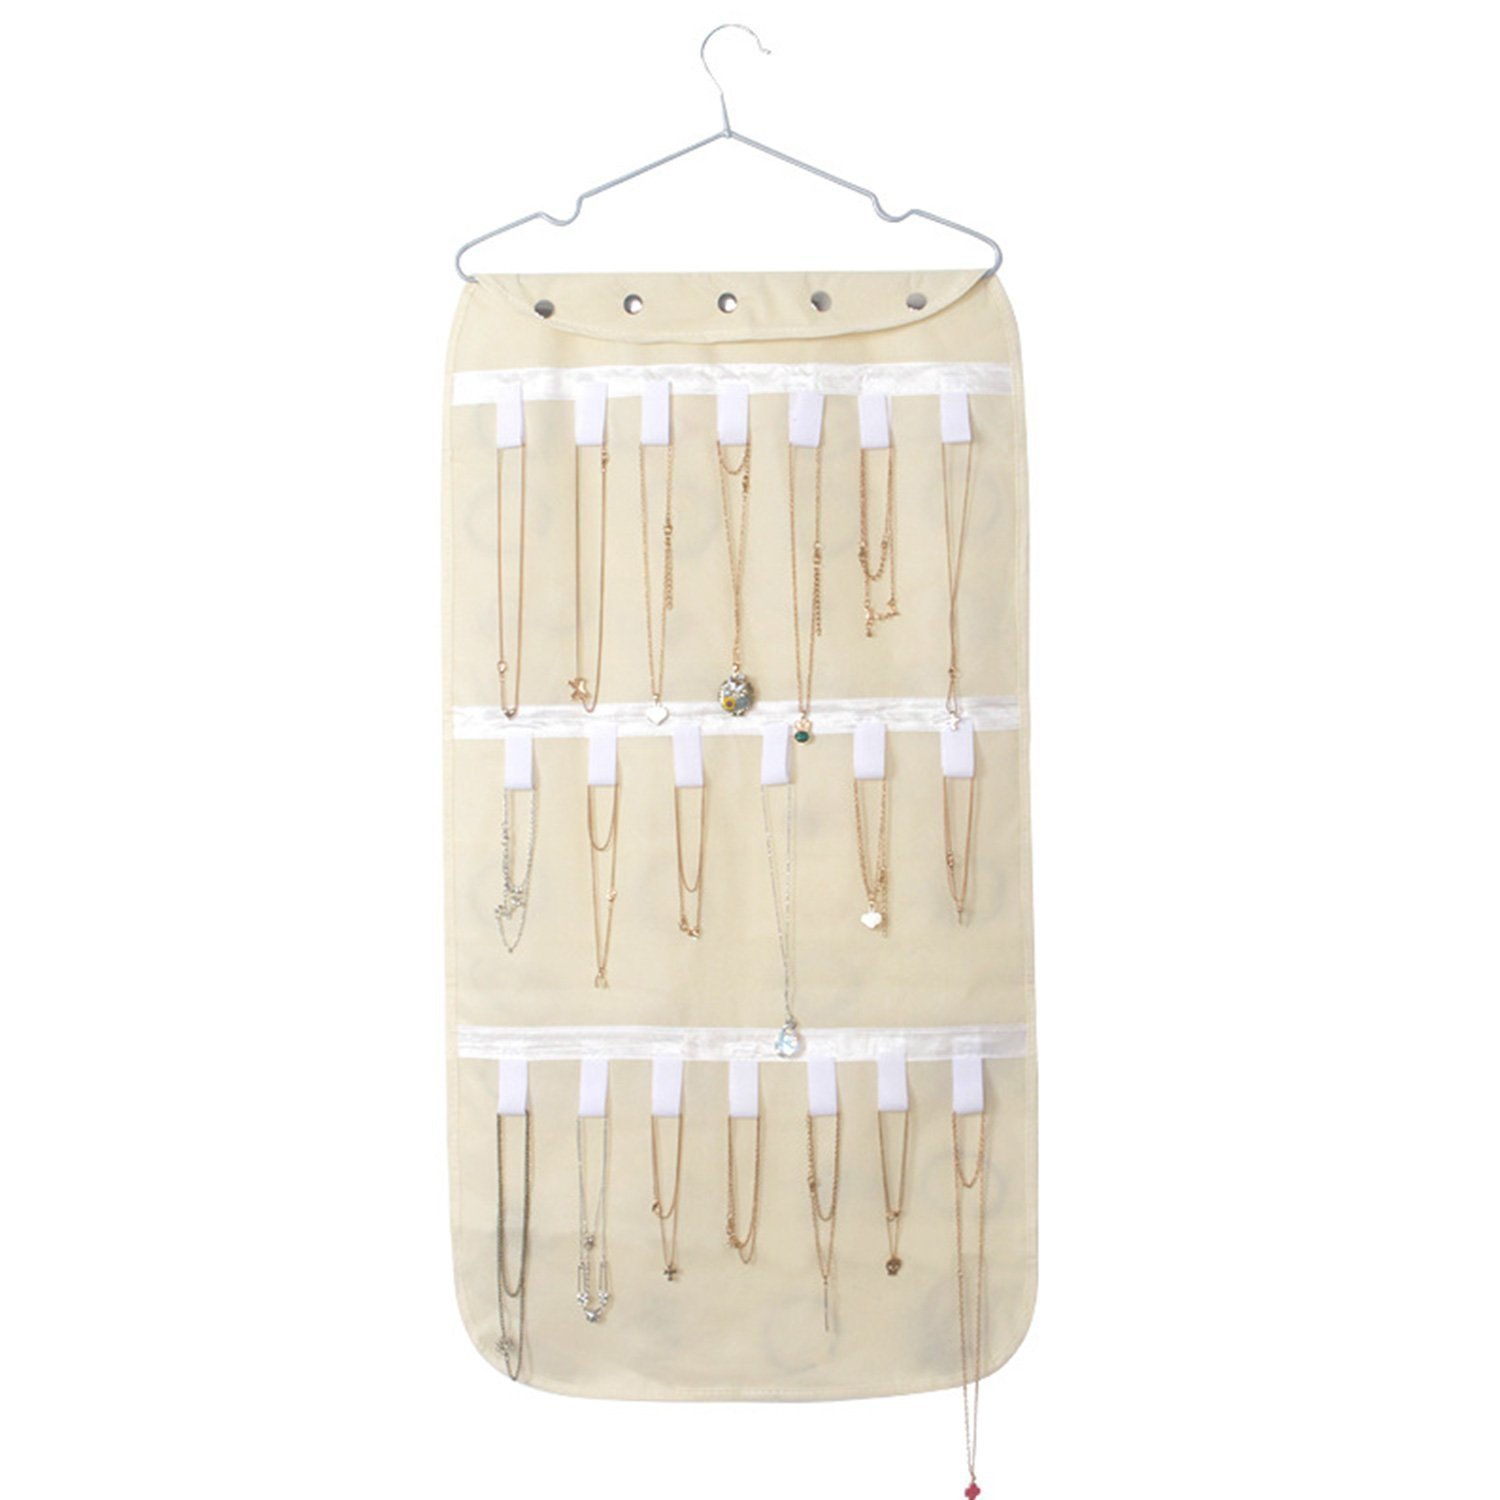 SAVORLIVING Hanging Jewelry Organizer Storage Bag Non-woven Fabric Dual Sided Wall Door Closet Hanging Organizer for Necklaces Bracelets Accessories (Beige)